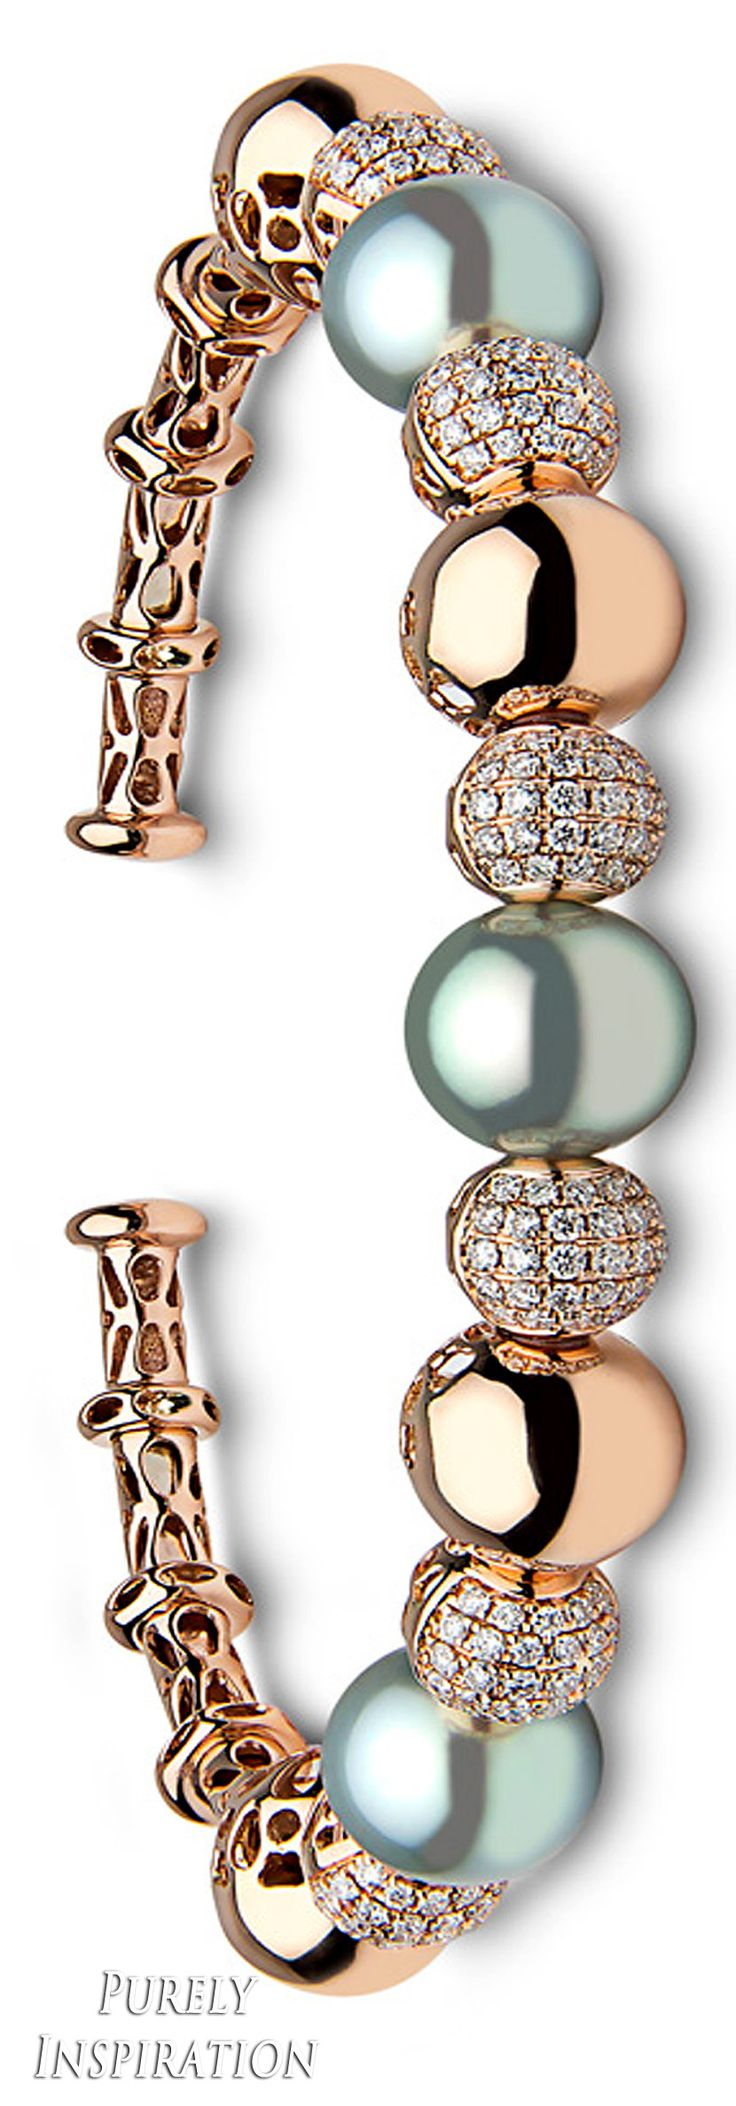 Yoko London Blue Rose Bracelet 18k rose gold, diamonds, golden Tahitian pearls | Purely Inspiratio                                                                                                                                                                                 More